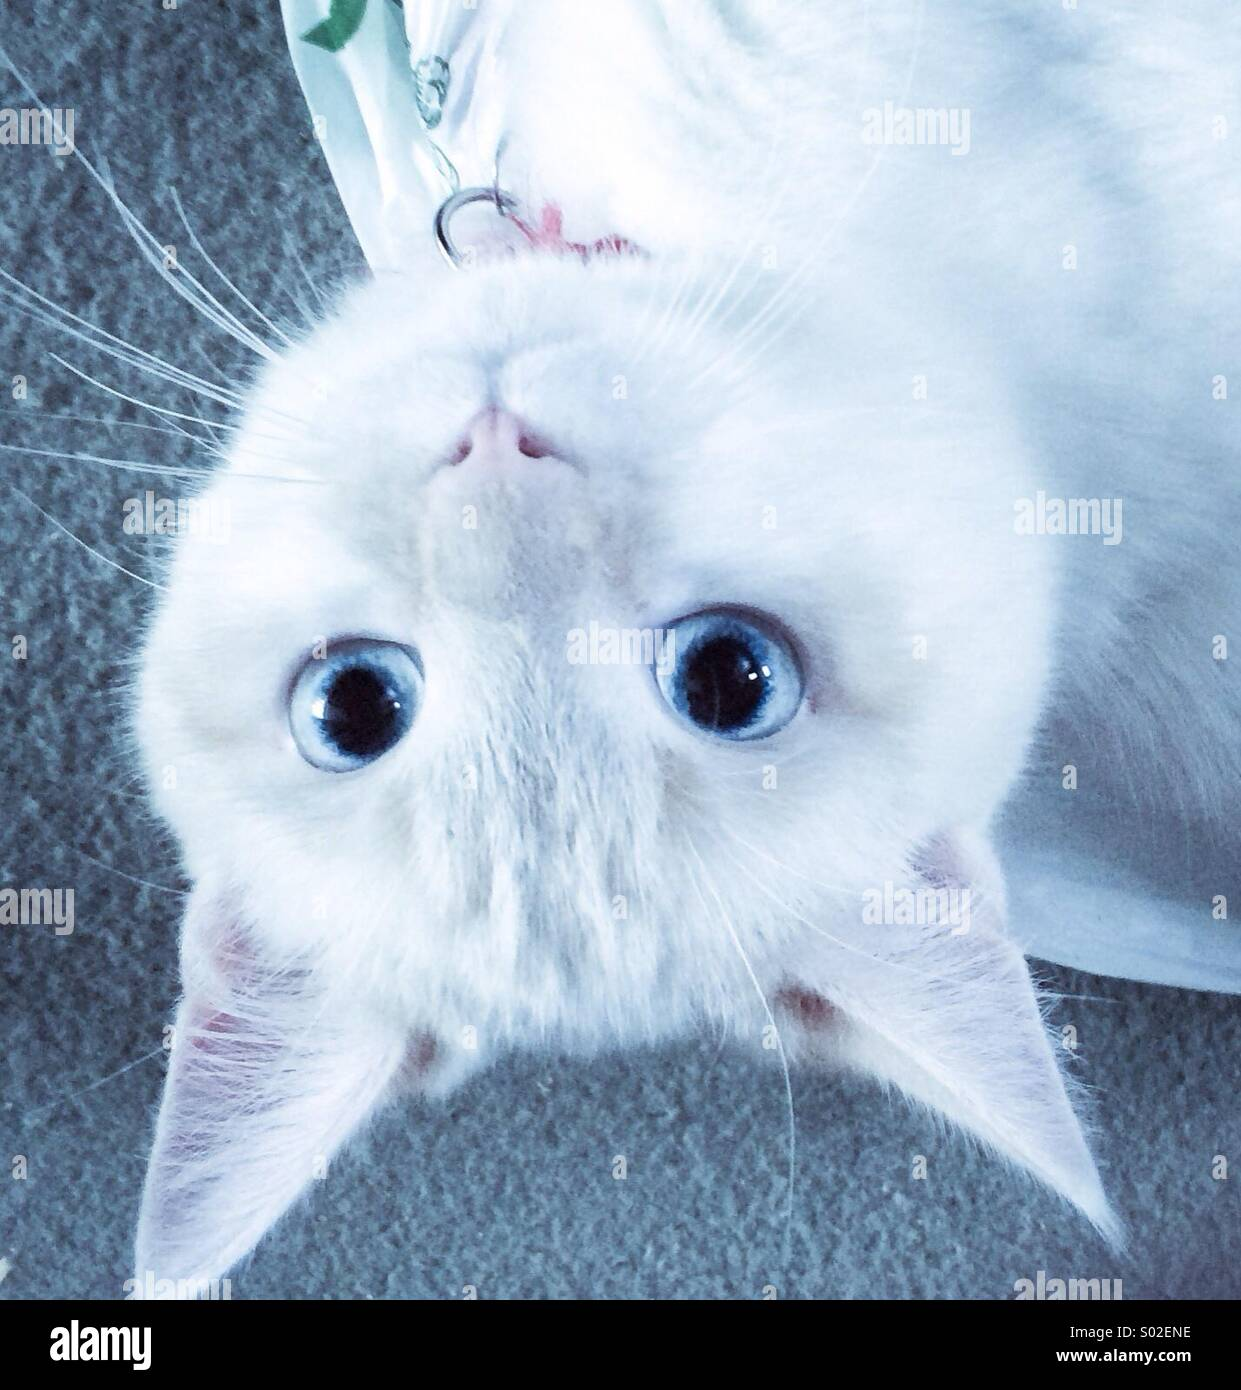 Upside down kitten with blue eyes - Stock Image